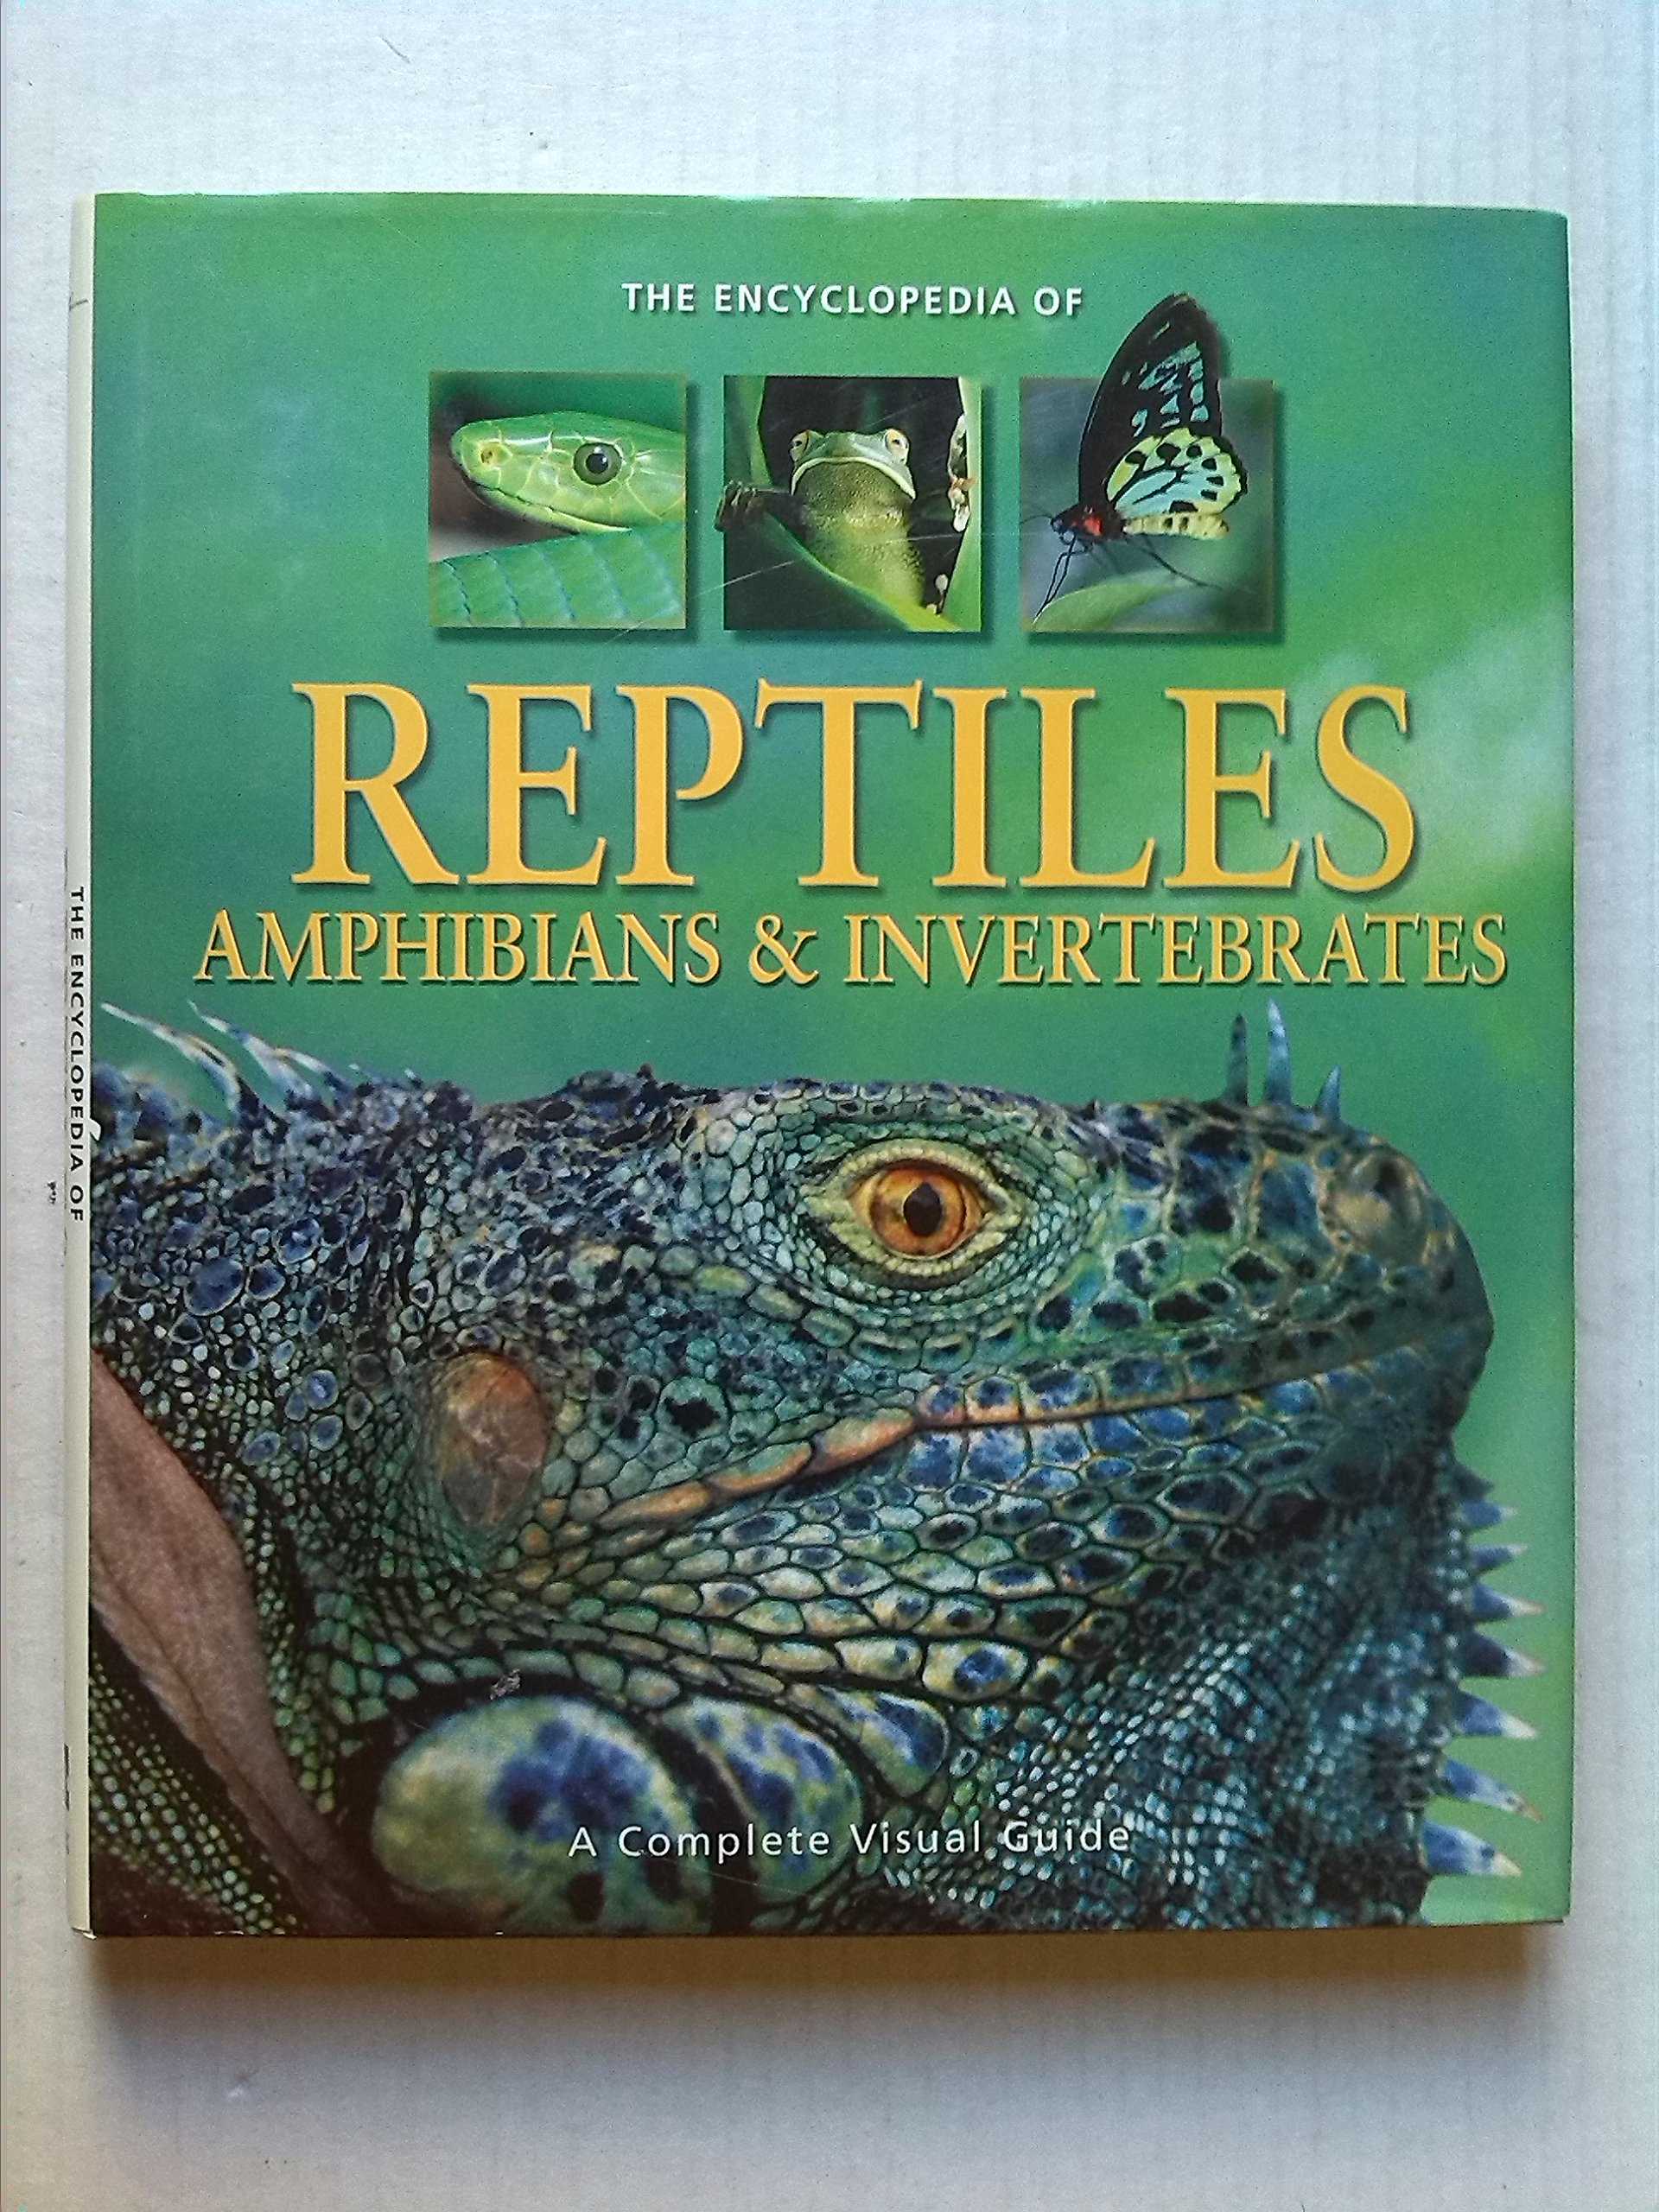 The Encyclopedia of Reptiles, Amphibians & Invertebrates